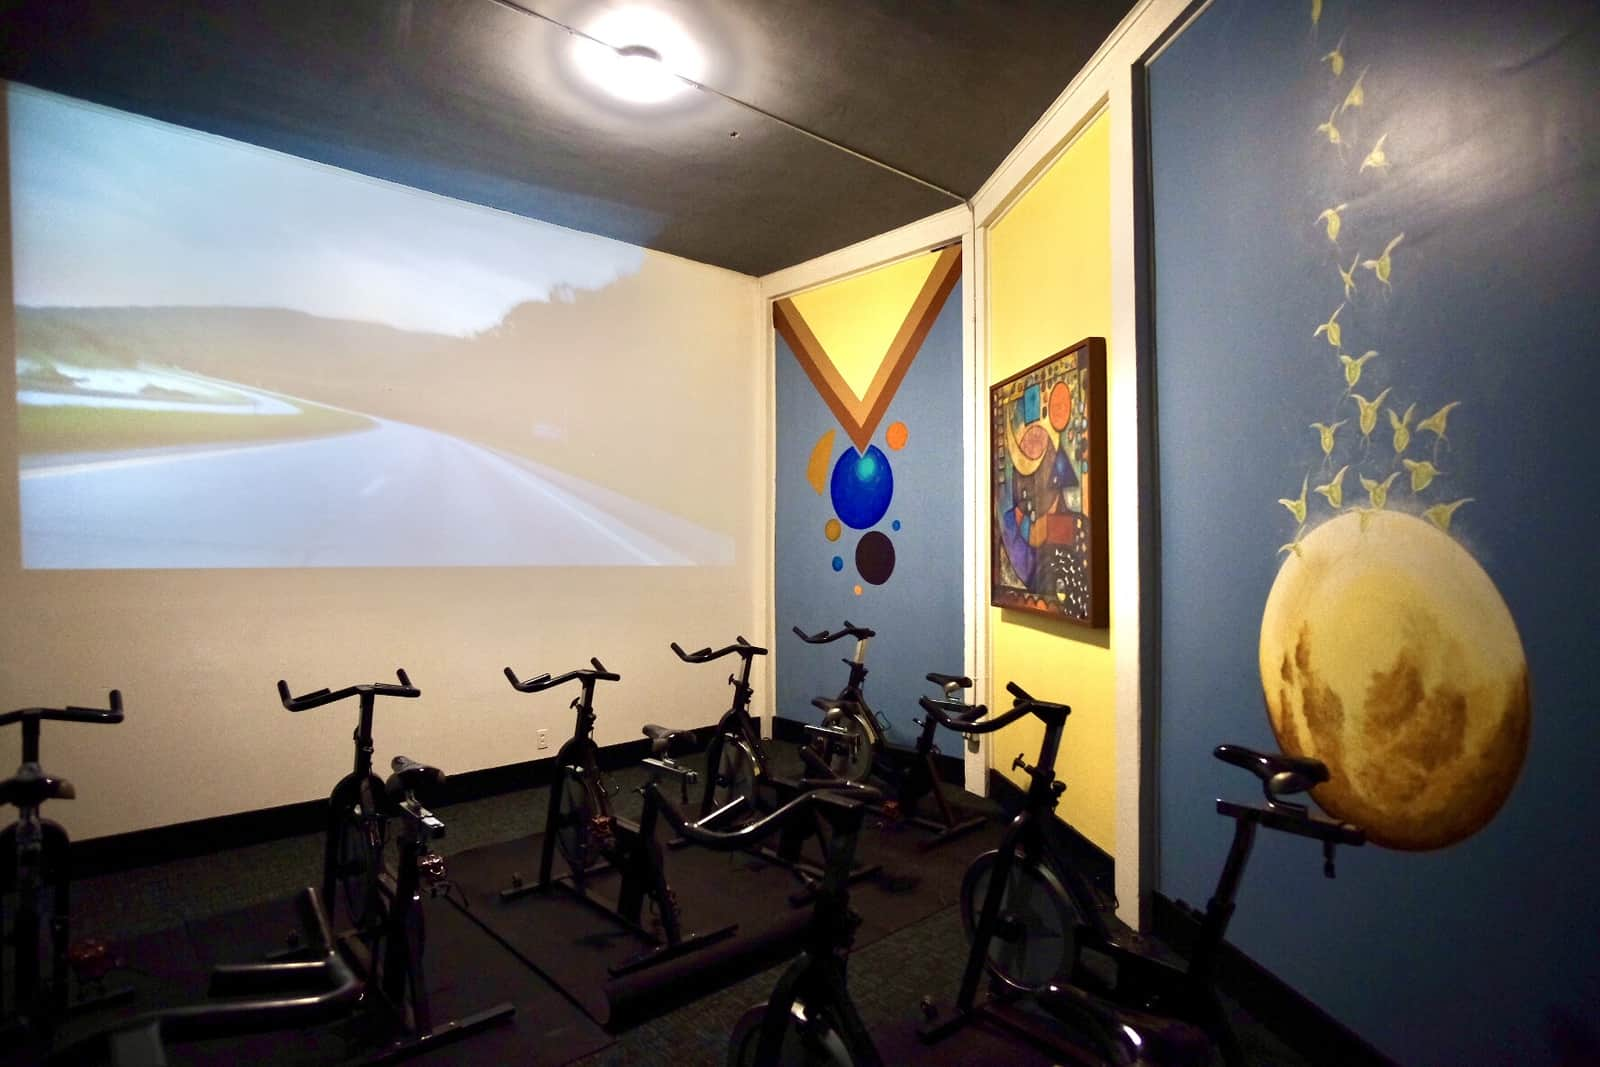 room with stationary bikes and abstract paintings on the wall